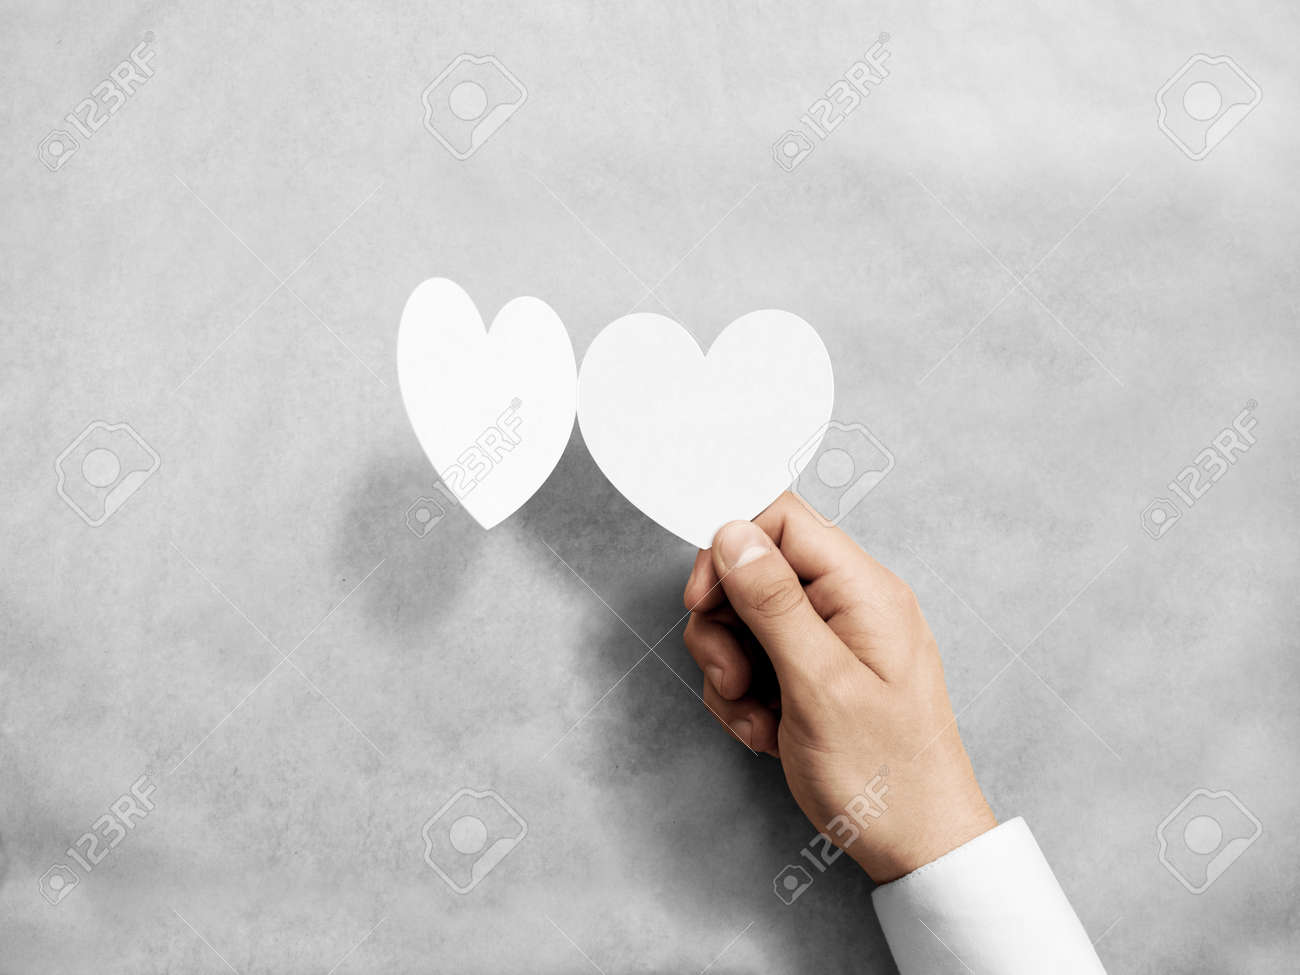 Hand Holding Blank White Valentines Card Mockup Arm Opening